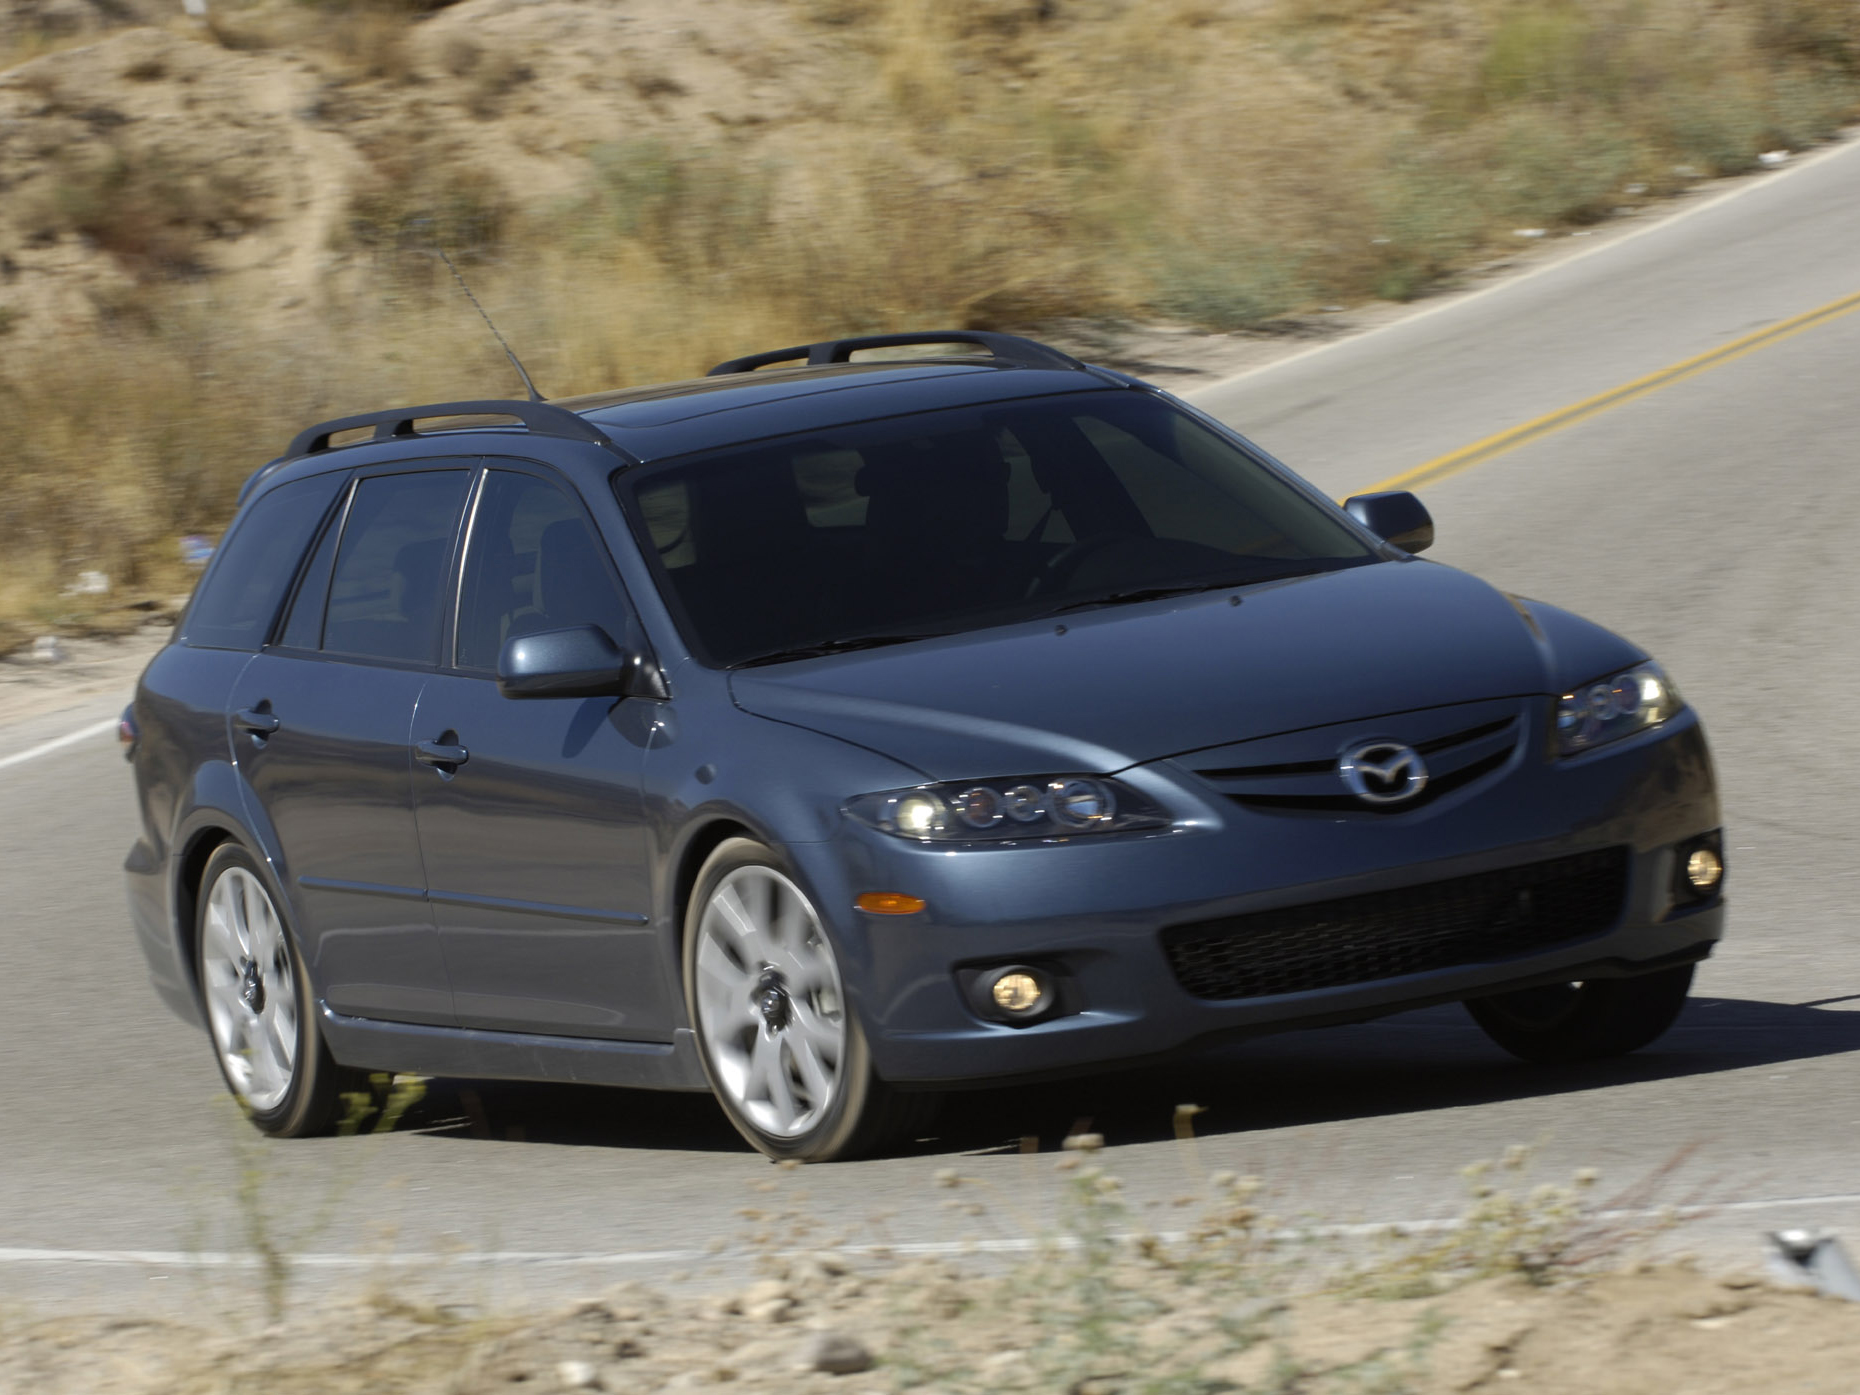 2006 mazda mazda 6 sport wagon pictures information and specs auto. Black Bedroom Furniture Sets. Home Design Ideas